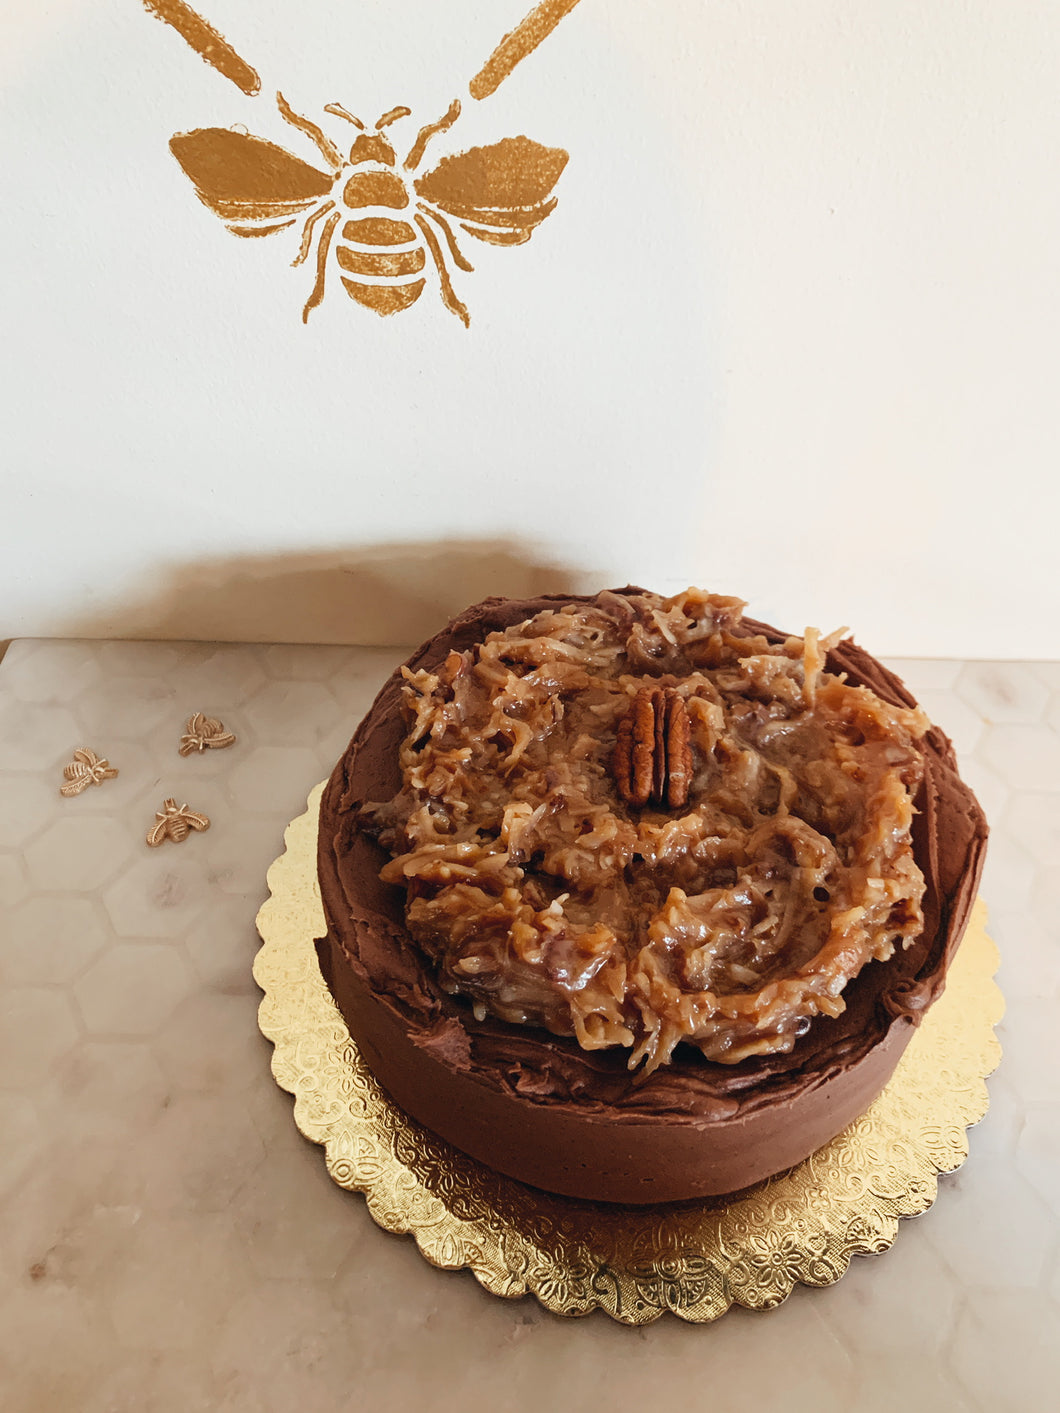 Suzi's German Chocolate Cake